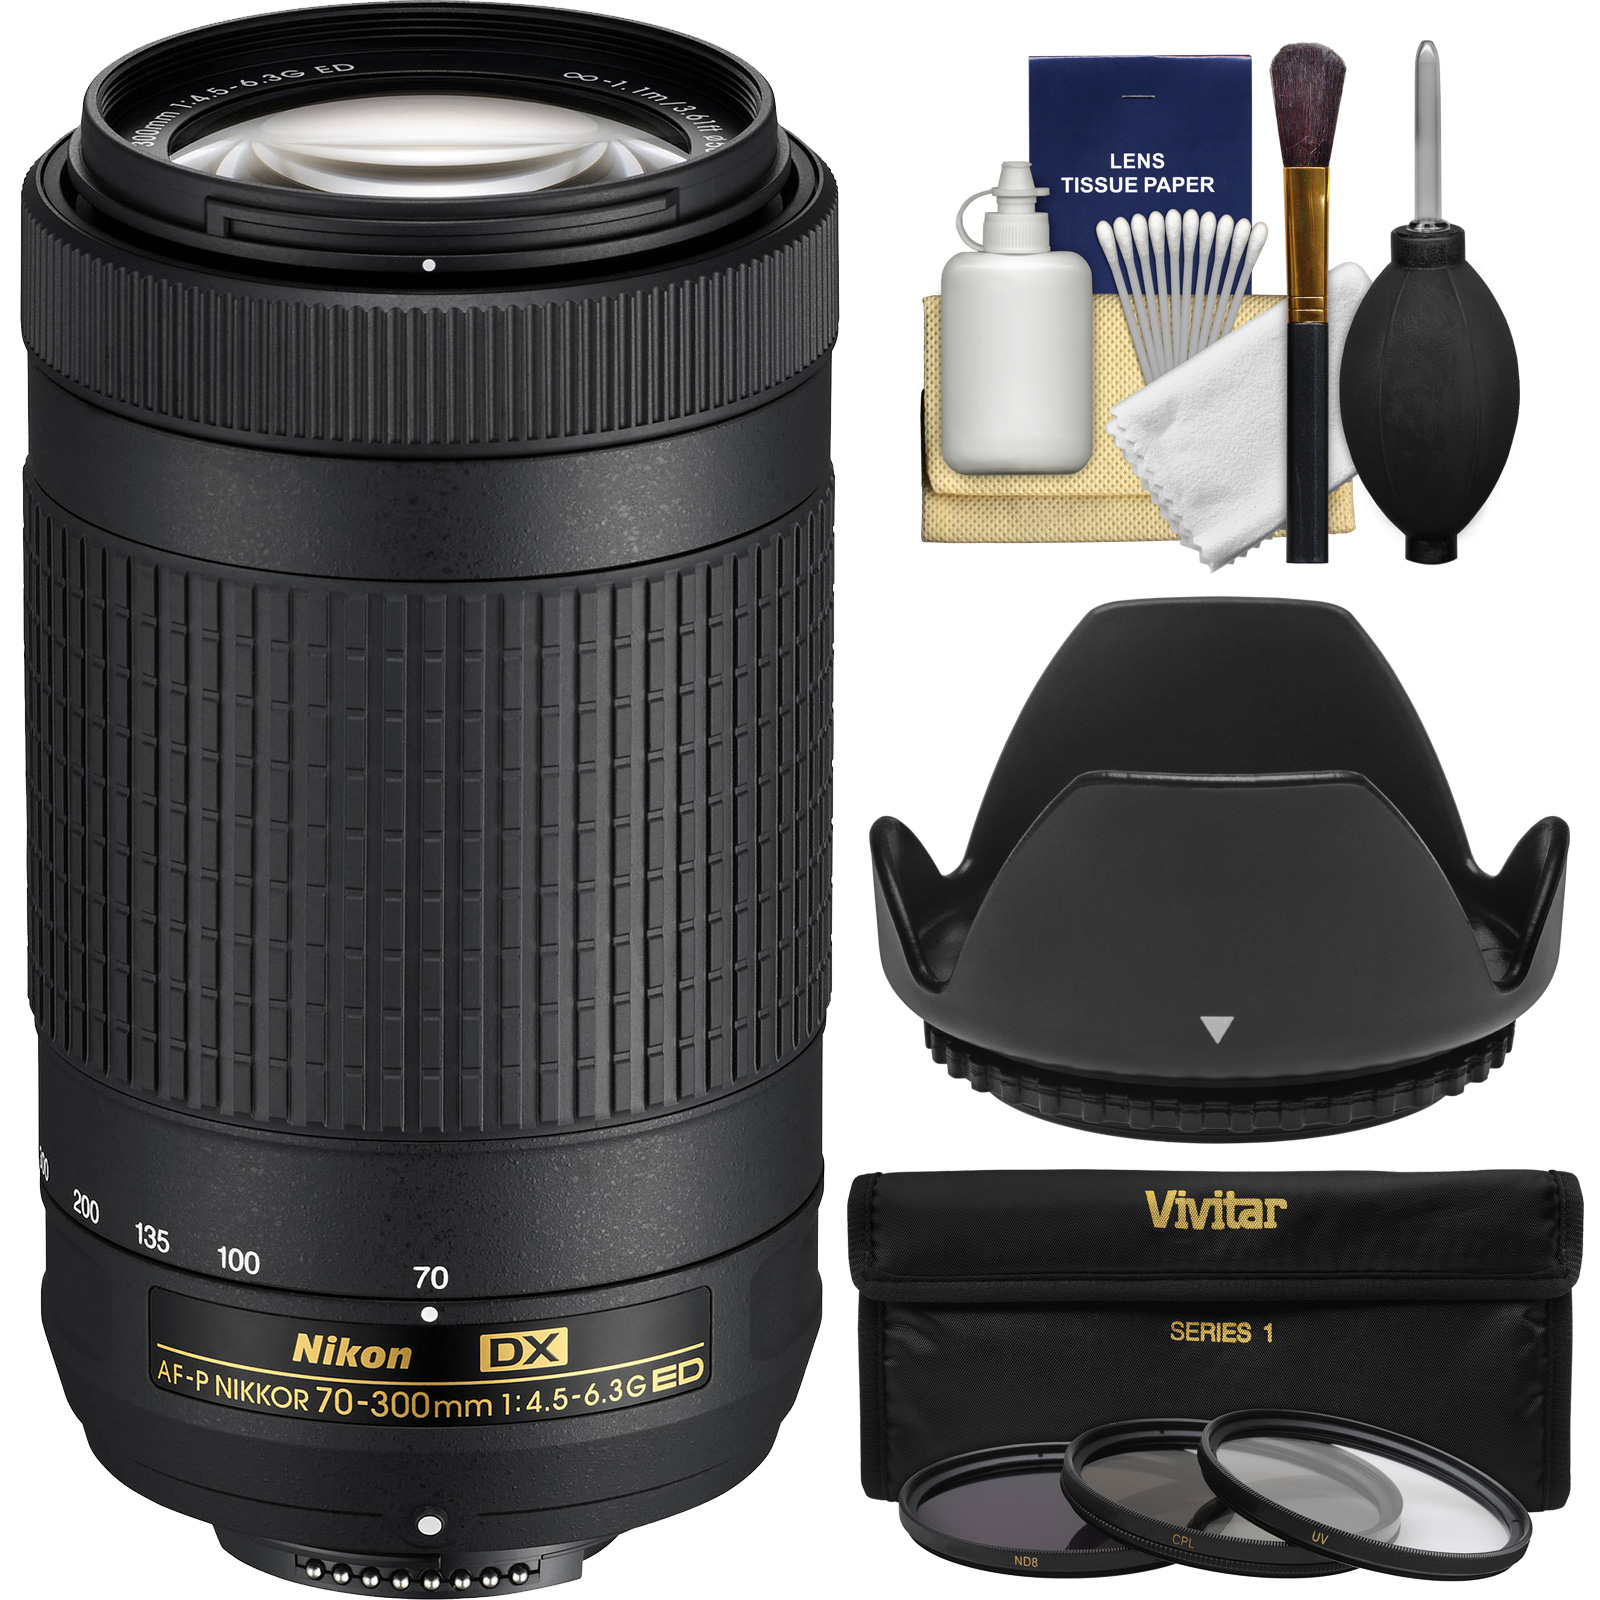 Nikon 70-300mm f/4.5-6.3G DX AF-P ED Zoom-Nikkor Lens - Factory Refurbished with 3 UV/CPL/ND8 Filters + Hood + Kit